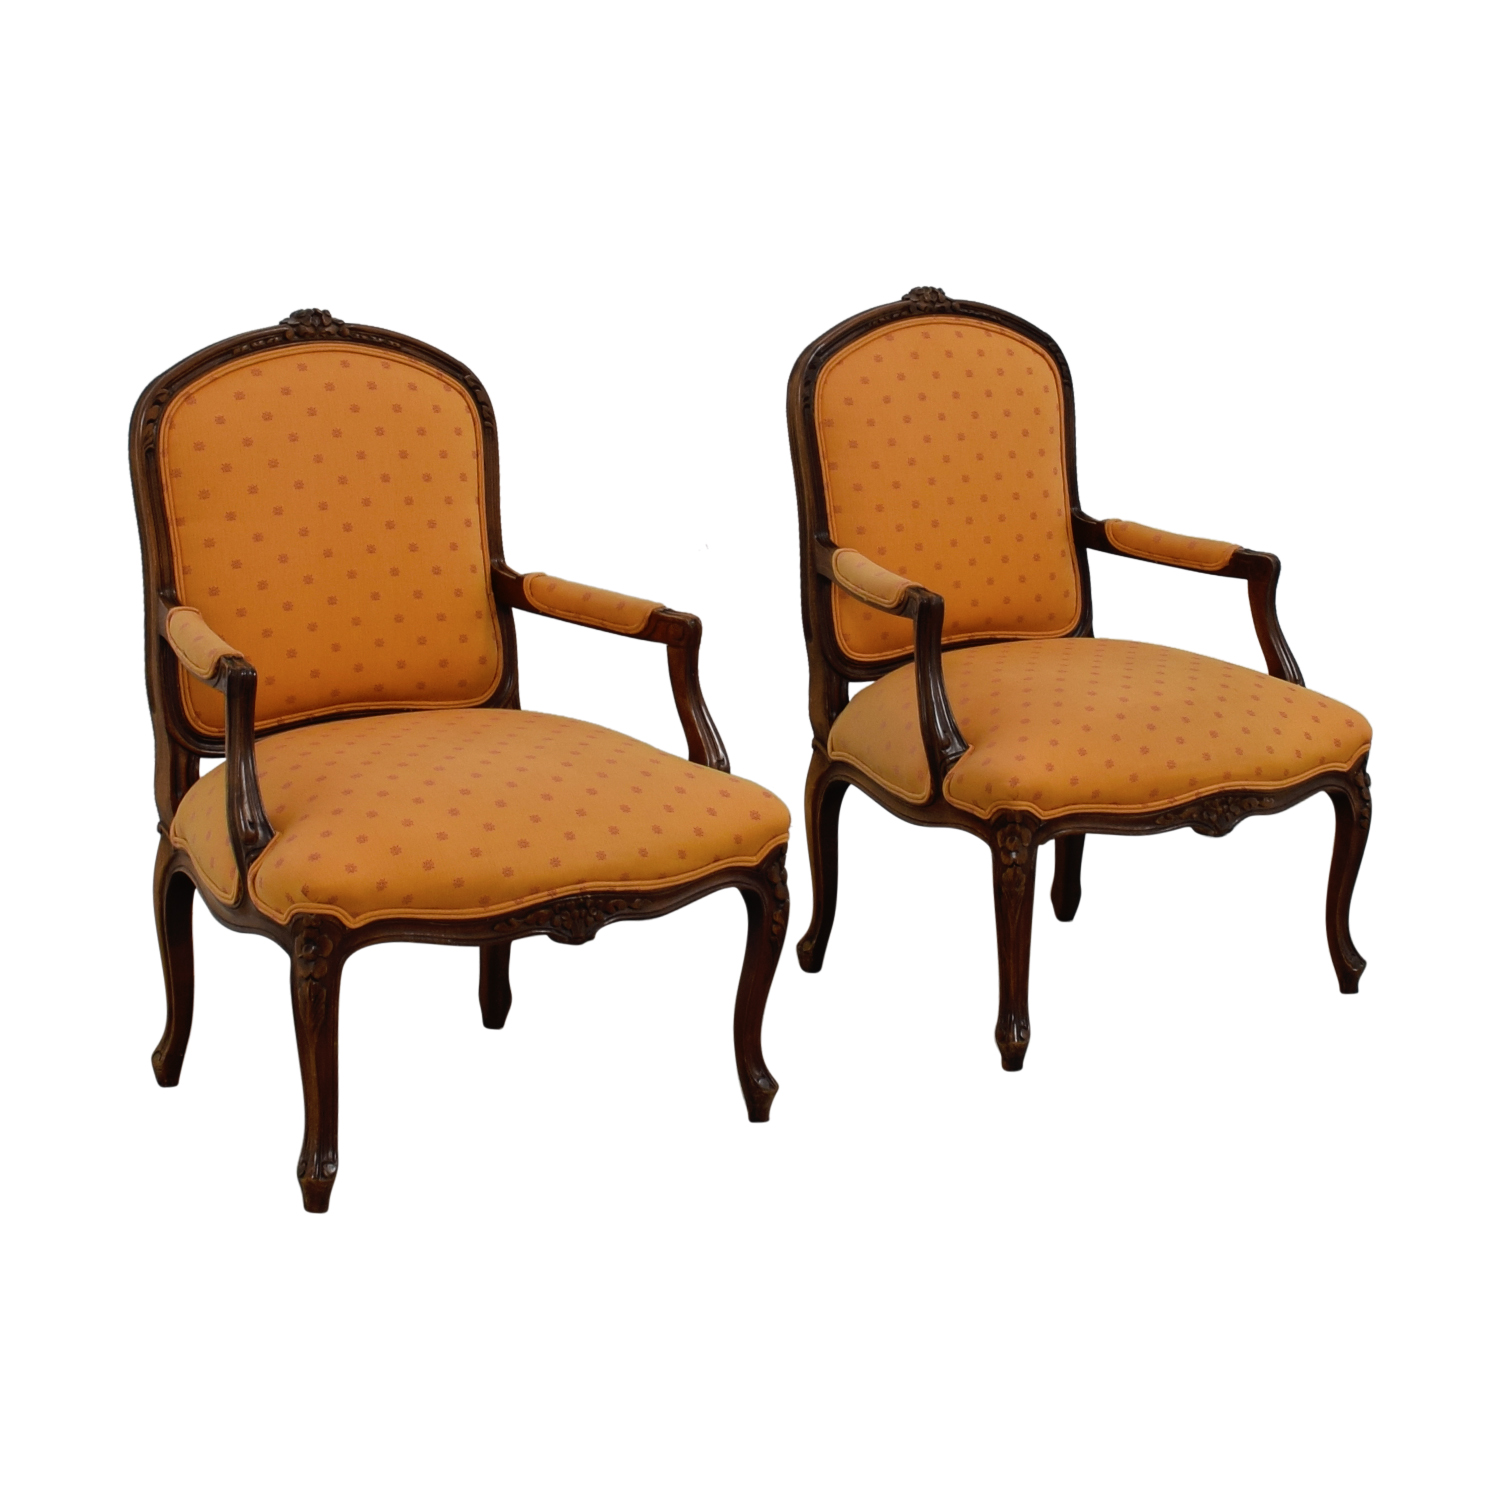 orange upholstered chair beach chairs walmart 75 off mid century arm accent buy online